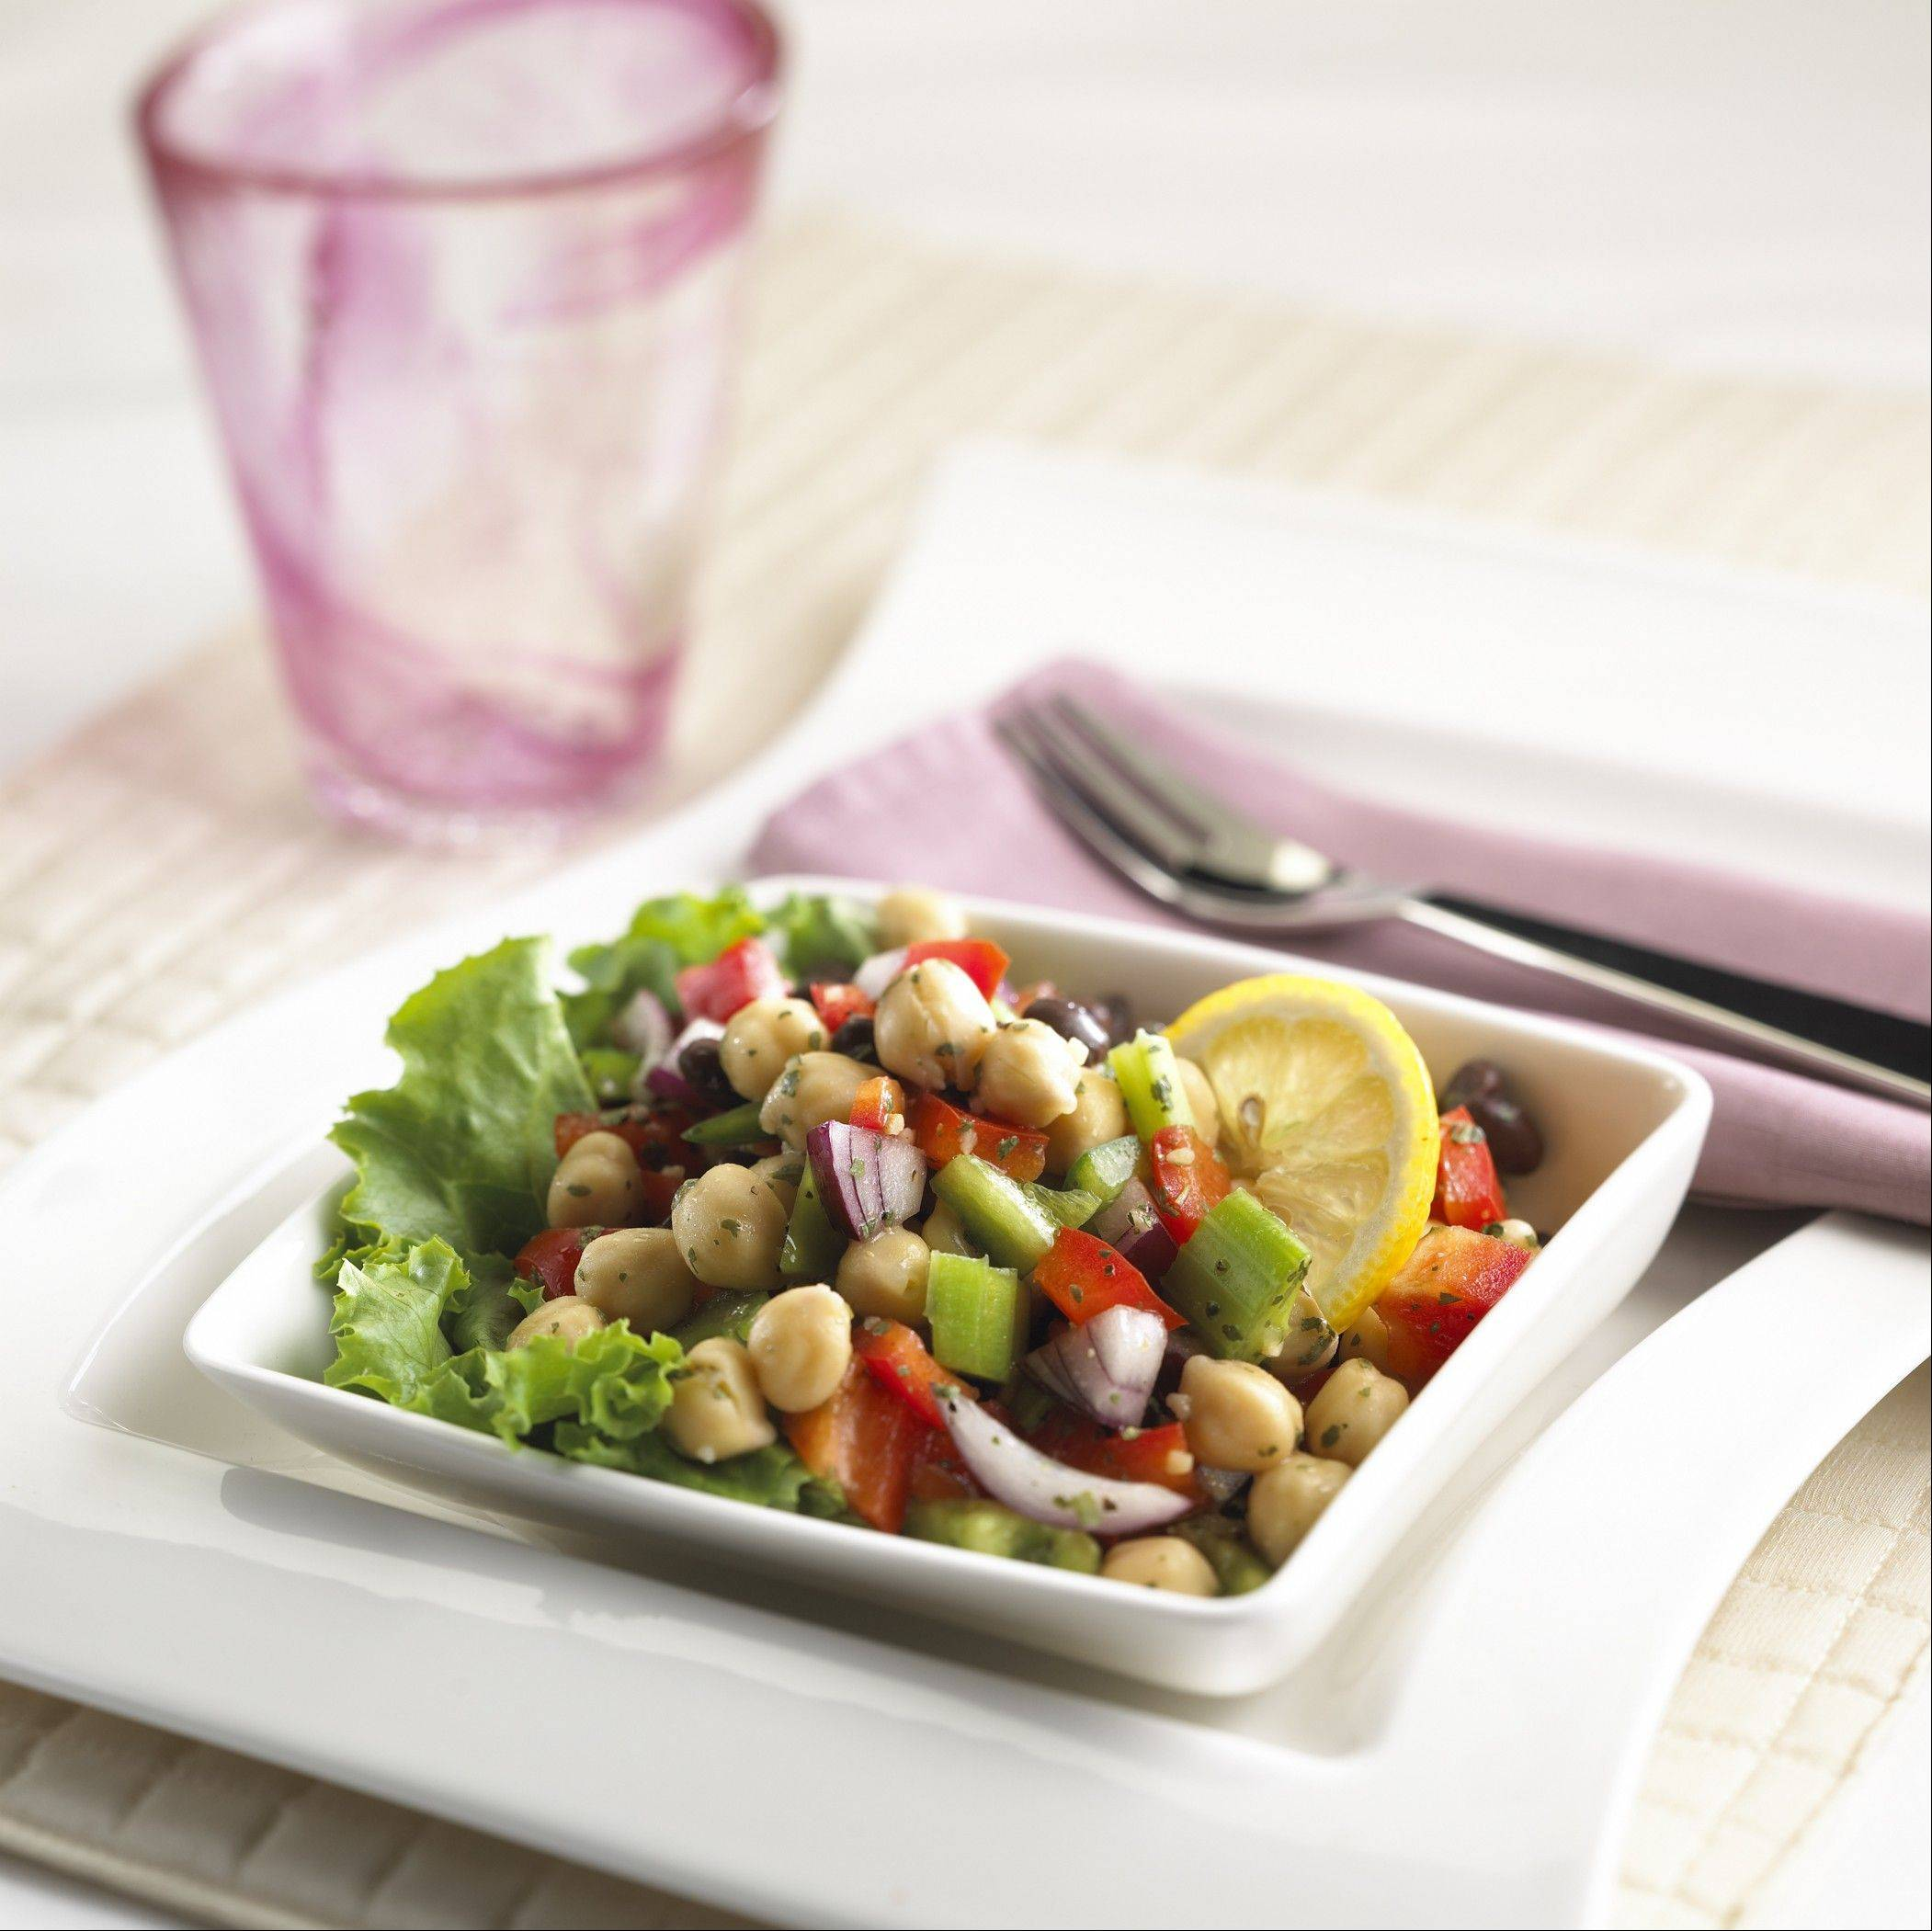 This low-fat, colorful salad is the perfect accompaniment to grilled chicken, steak or burgers.